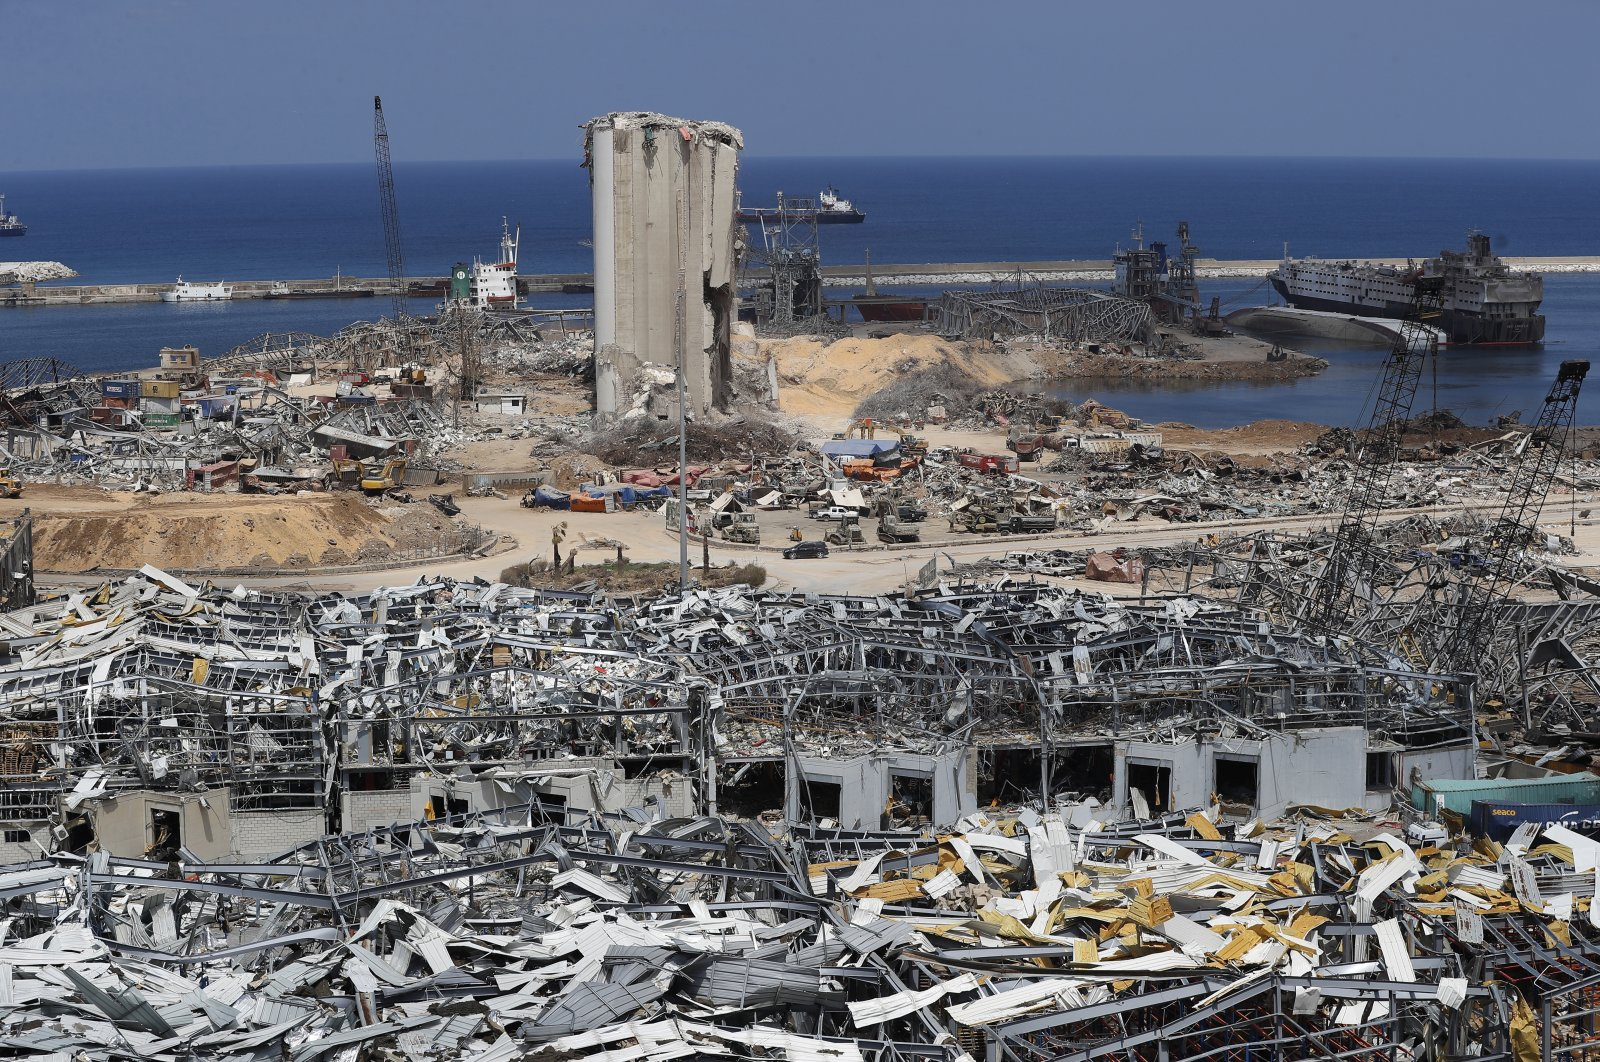 The scene of the Aug. 4 explosion that hit the seaport of Beirut, Lebanon, Aug. 19, 2020. (AP Photo)